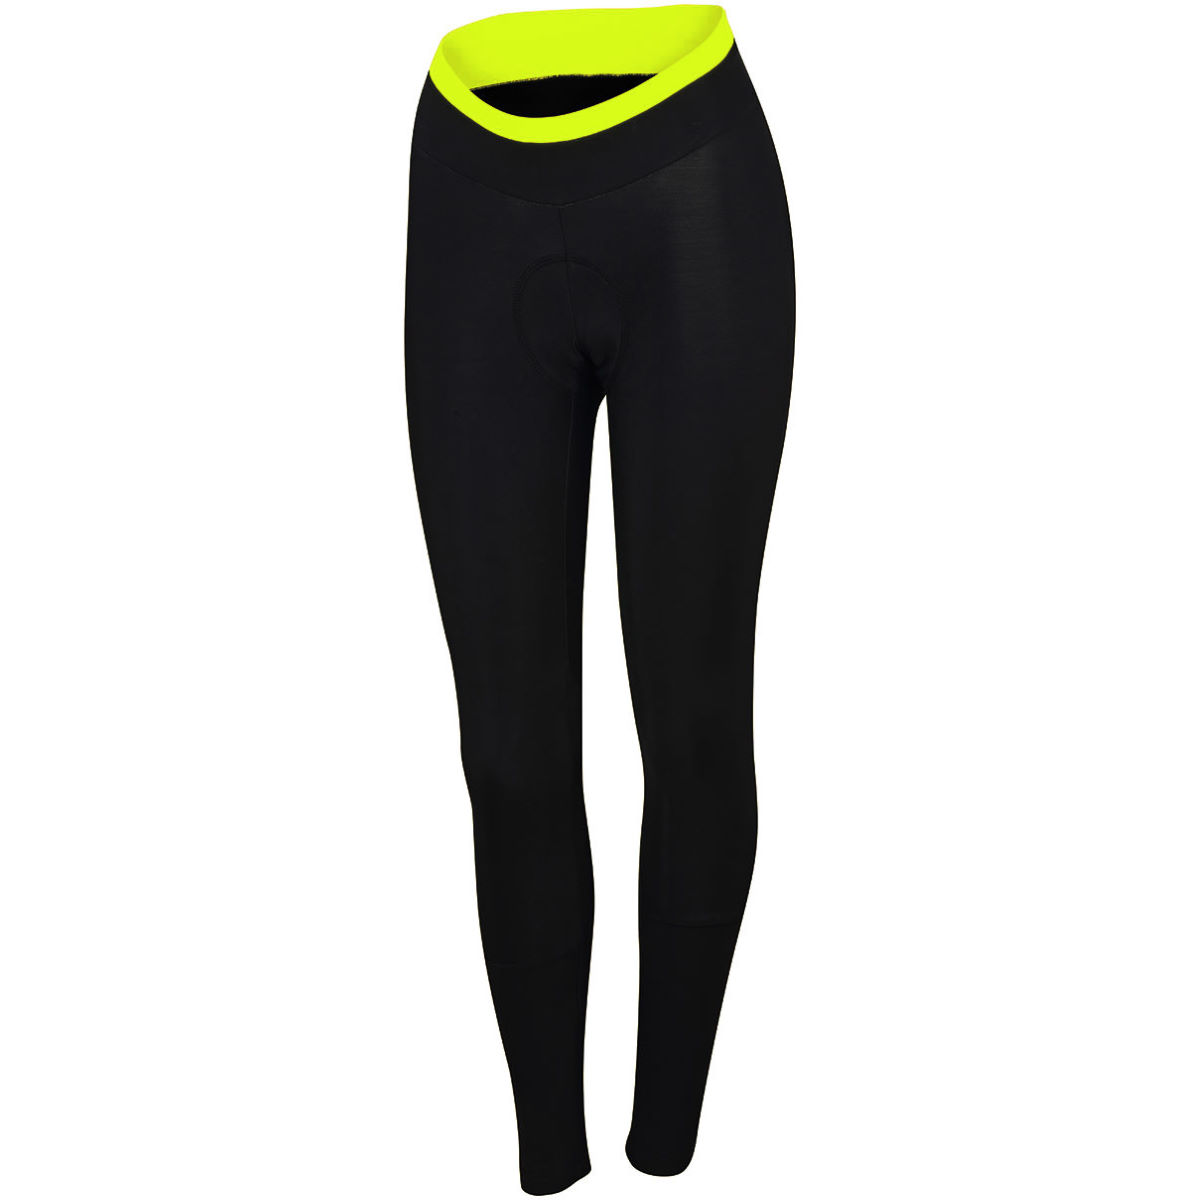 Cuissard long Femme Sportful Luna Thermal - 2XL Black/Yellow Fluo